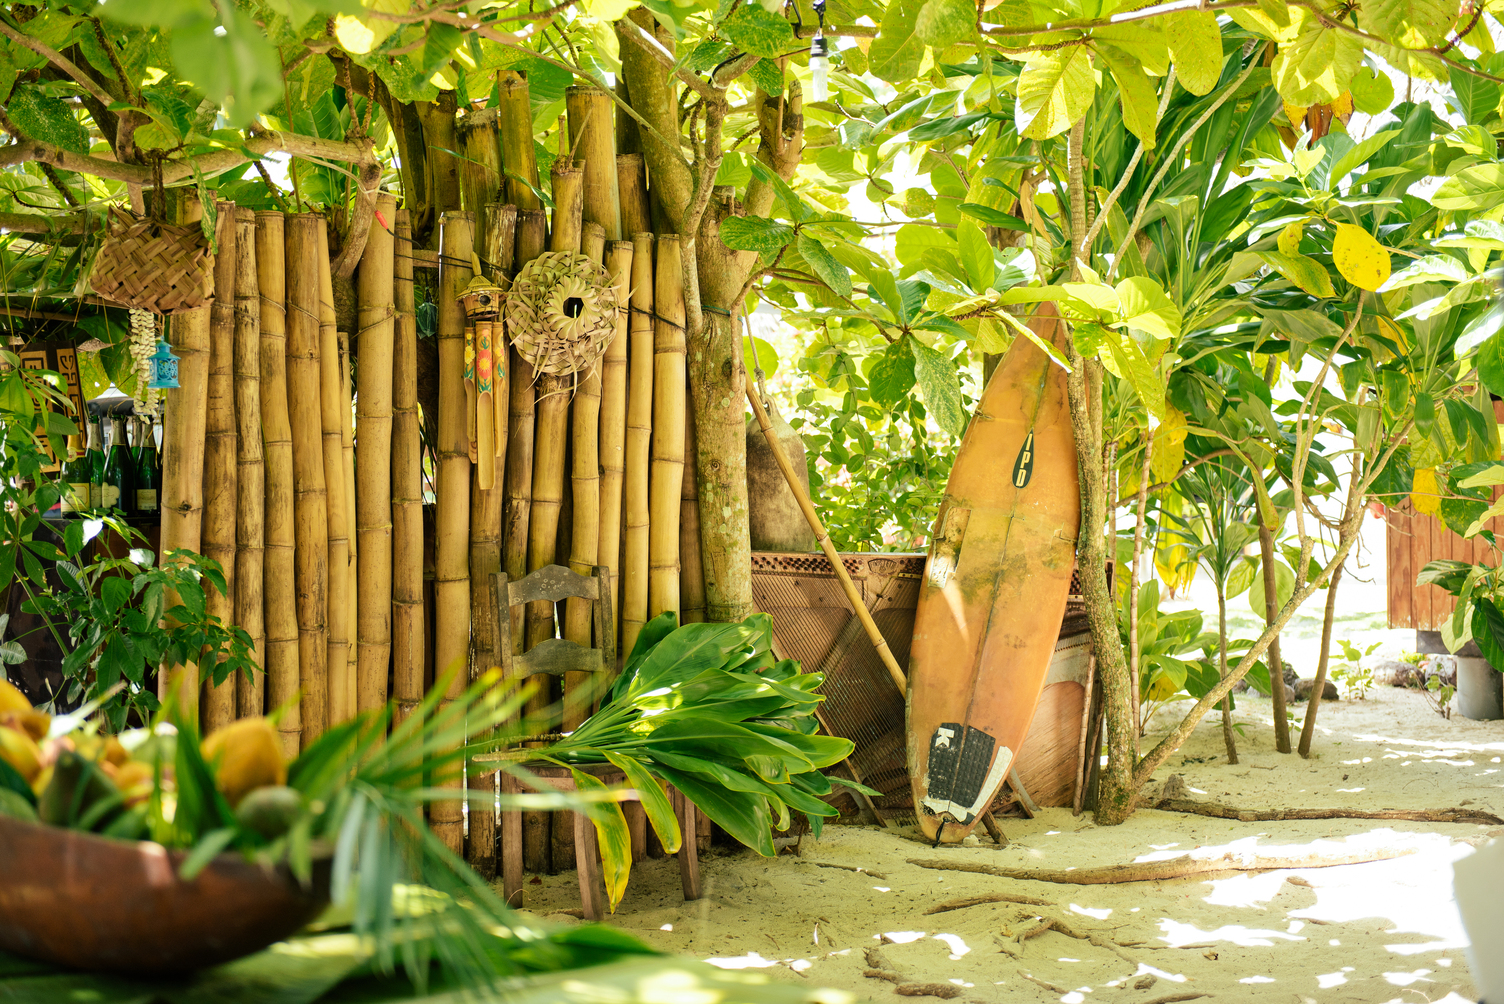 The first surfing references were found in Polynesia.